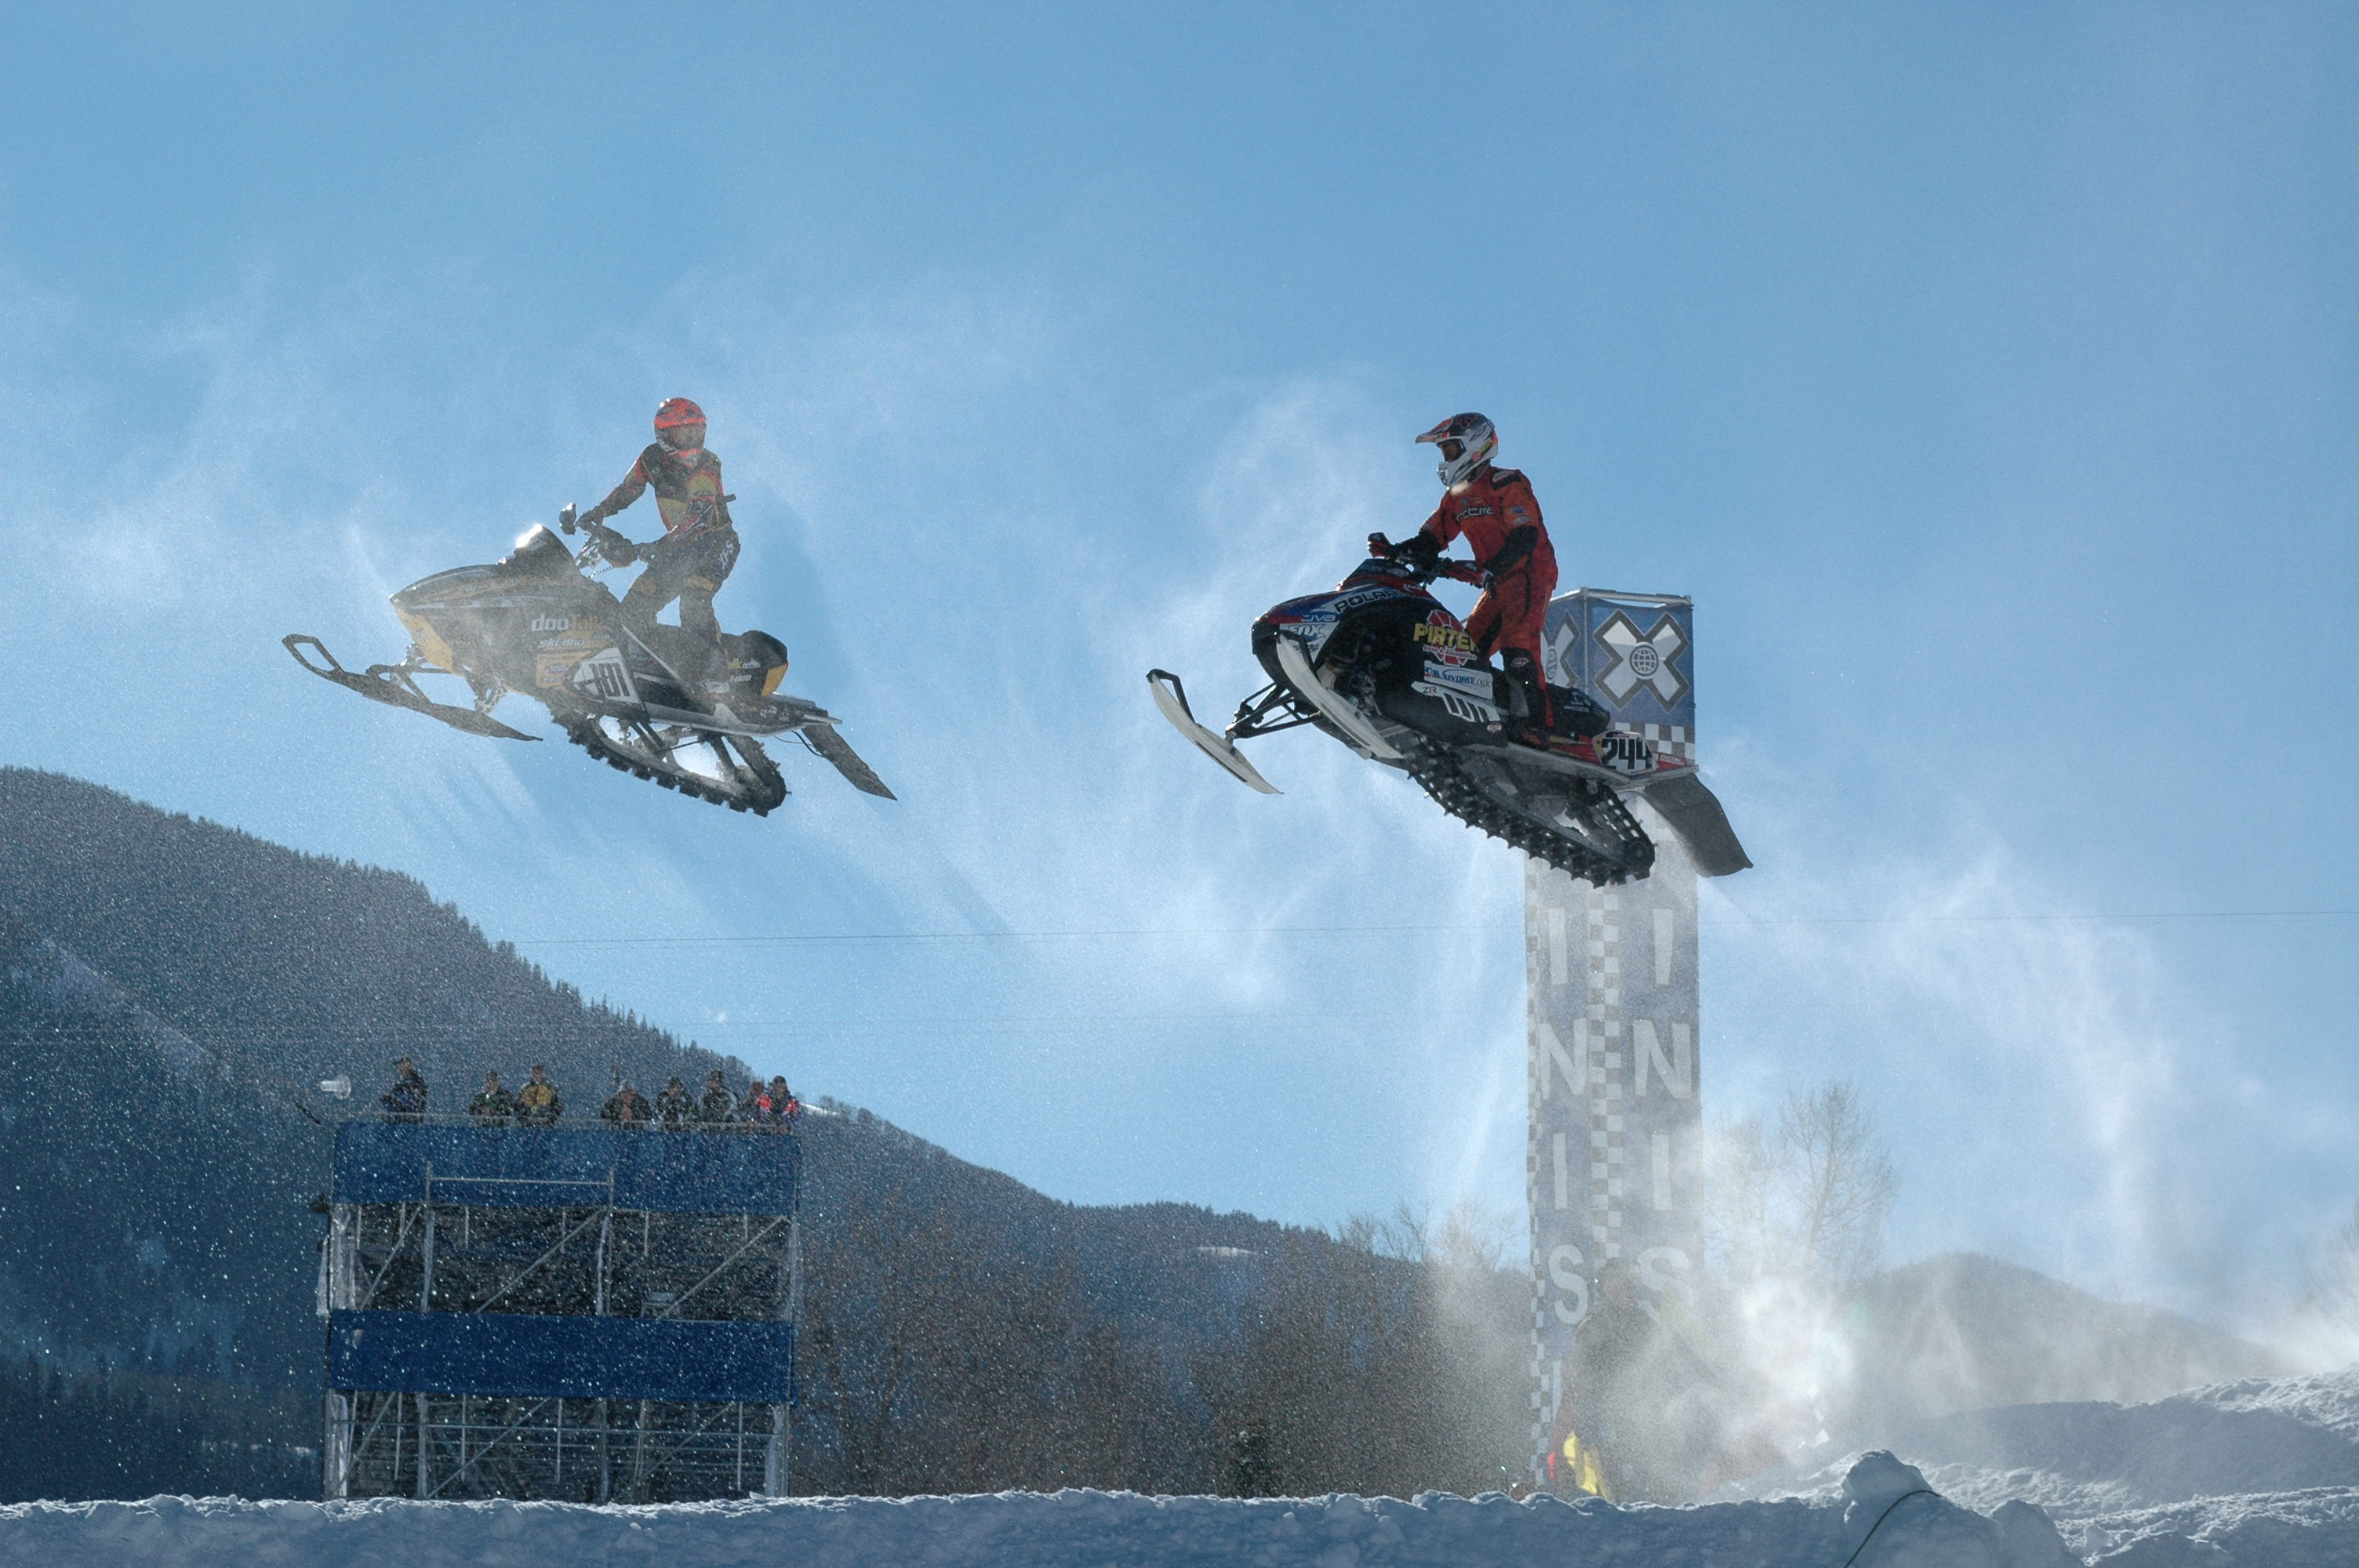 Snowmobile Stunt, Attribution: Arthur Mouratidis